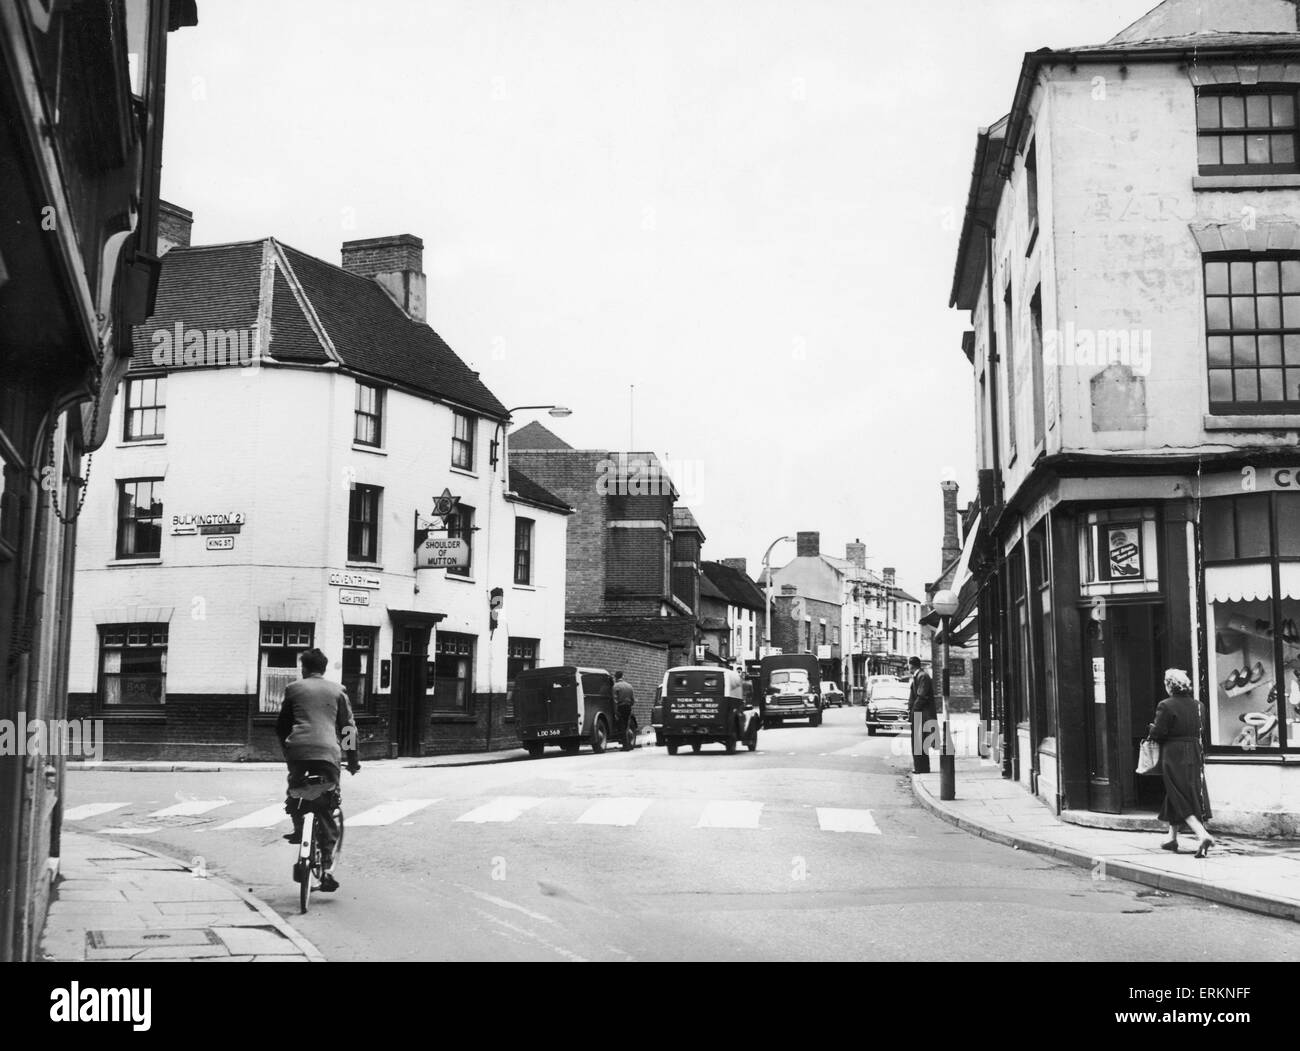 The High Street Bedworth 16th May 1958 - Stock Image